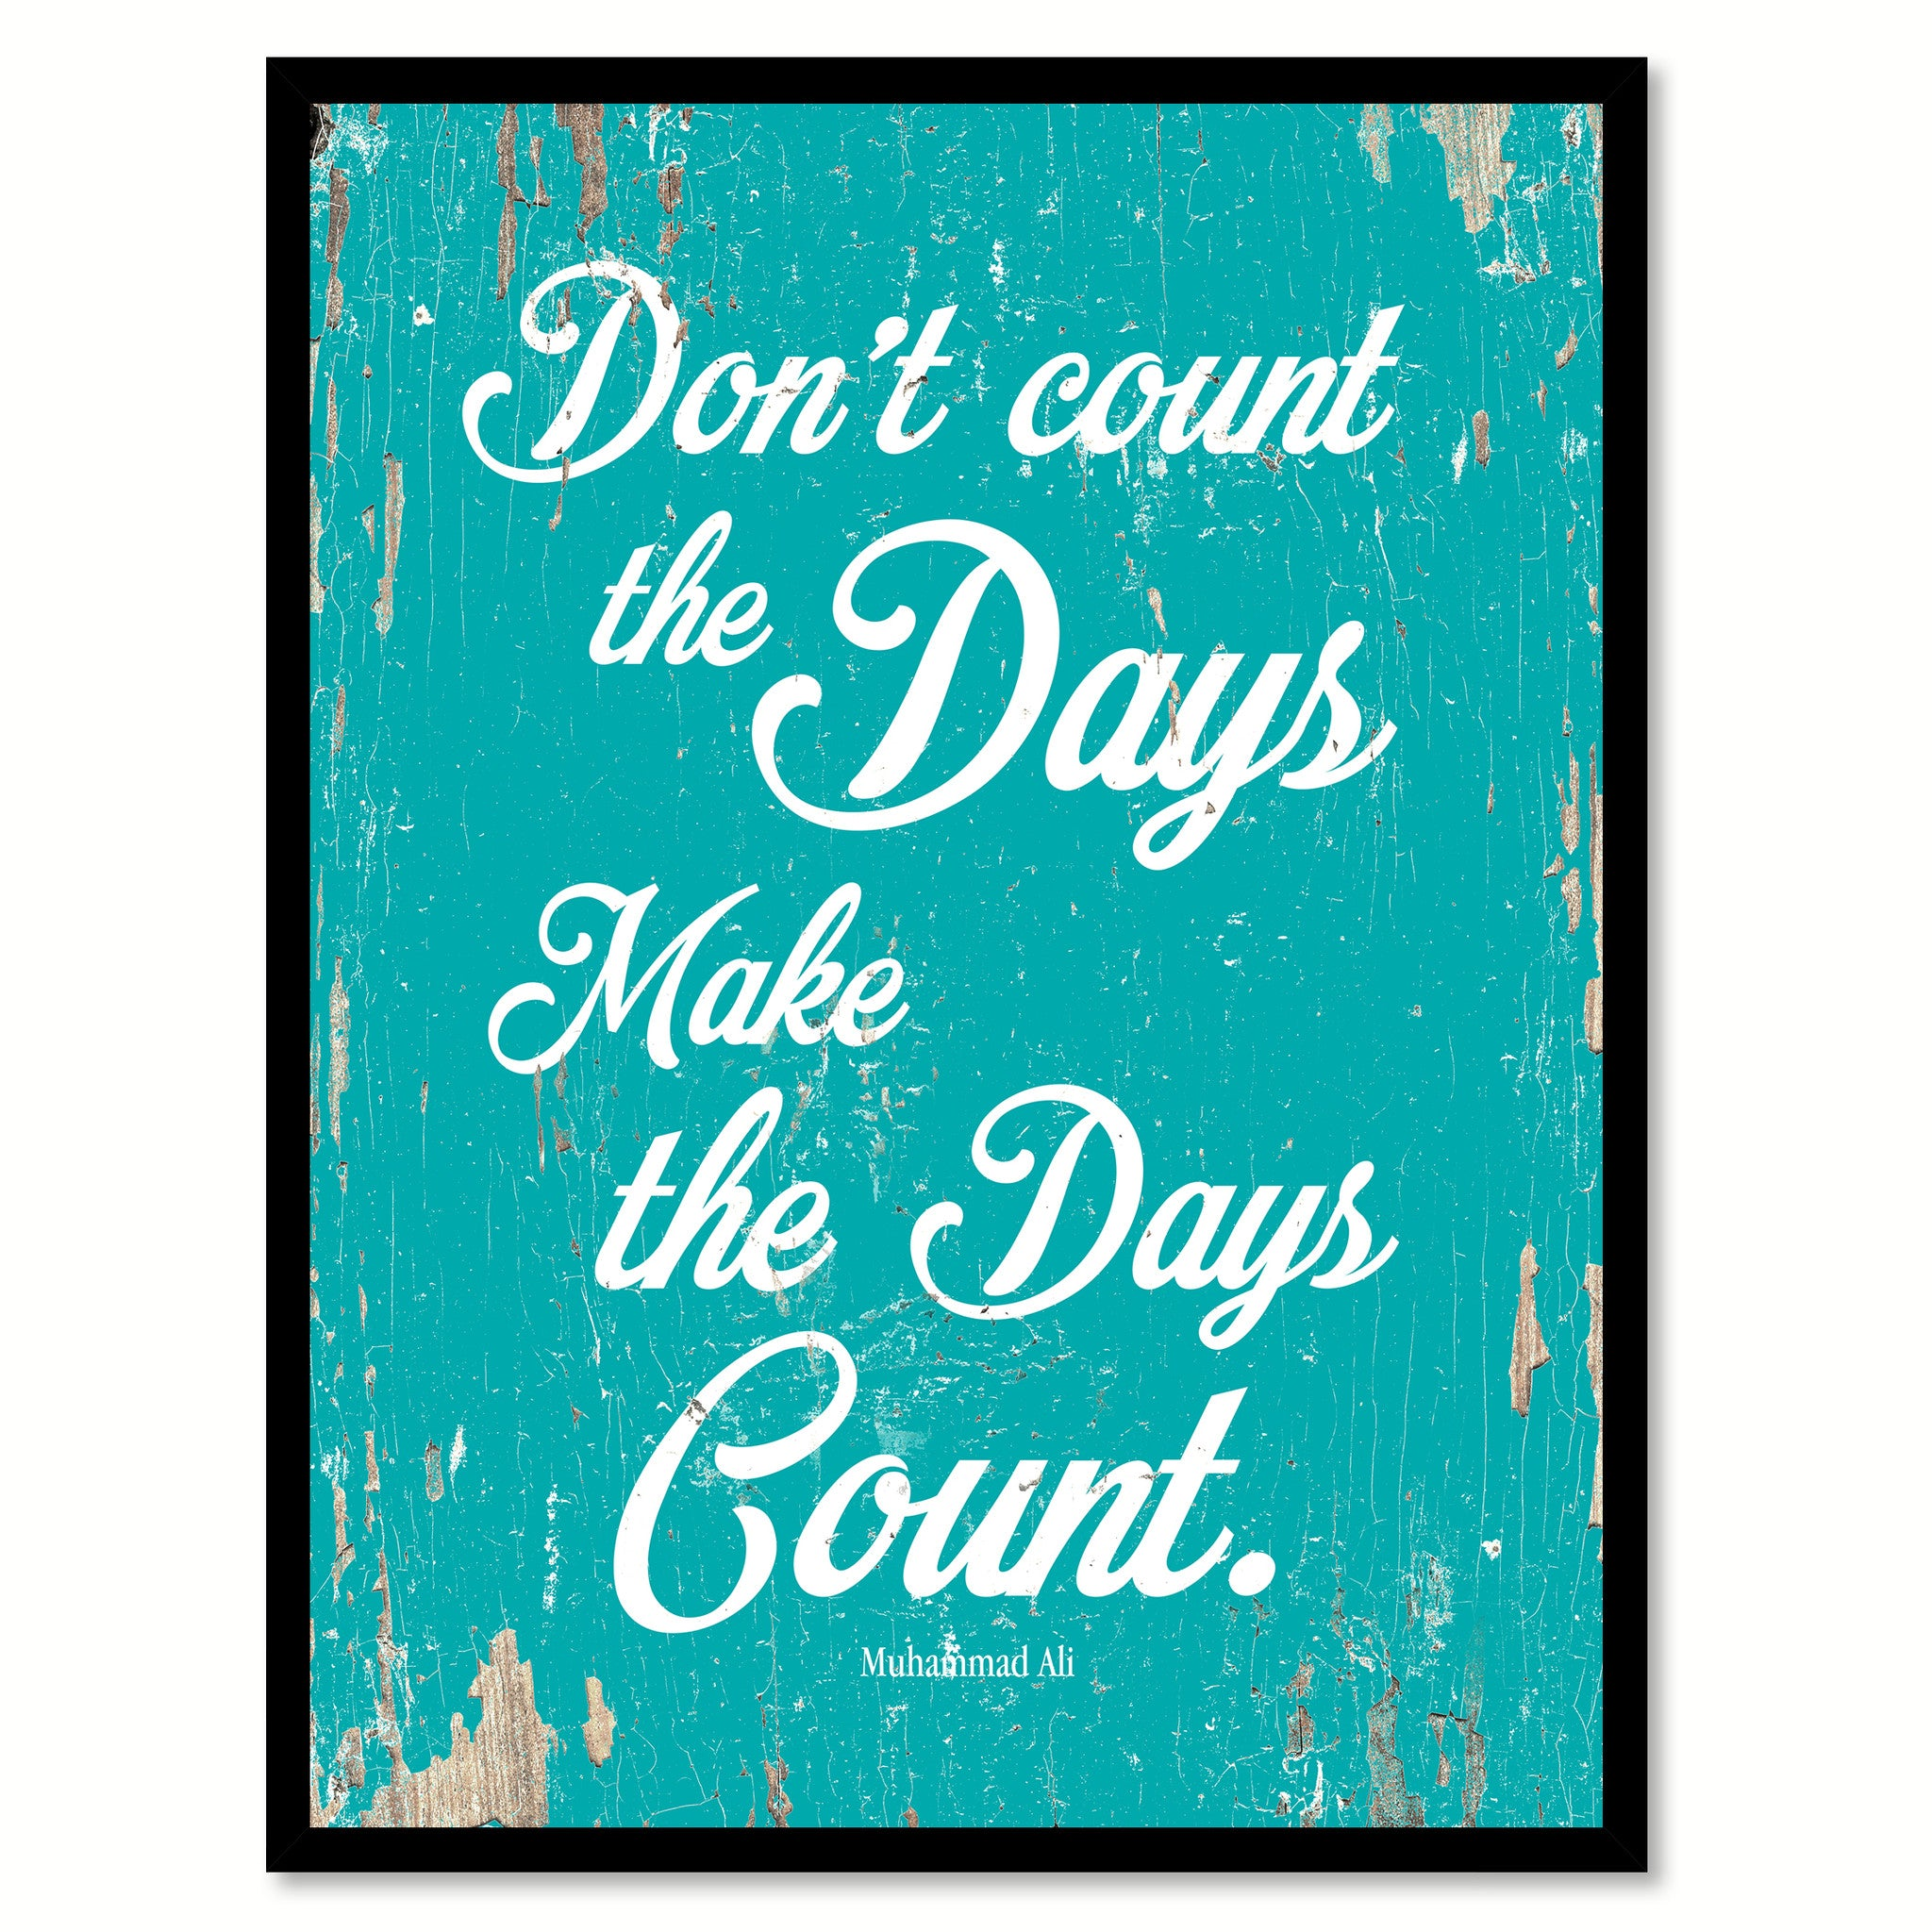 Don't Count The Days Make The Days Count Muhammad Ali Quote Saying Home Decor Wall Art Gift Ideas 111713